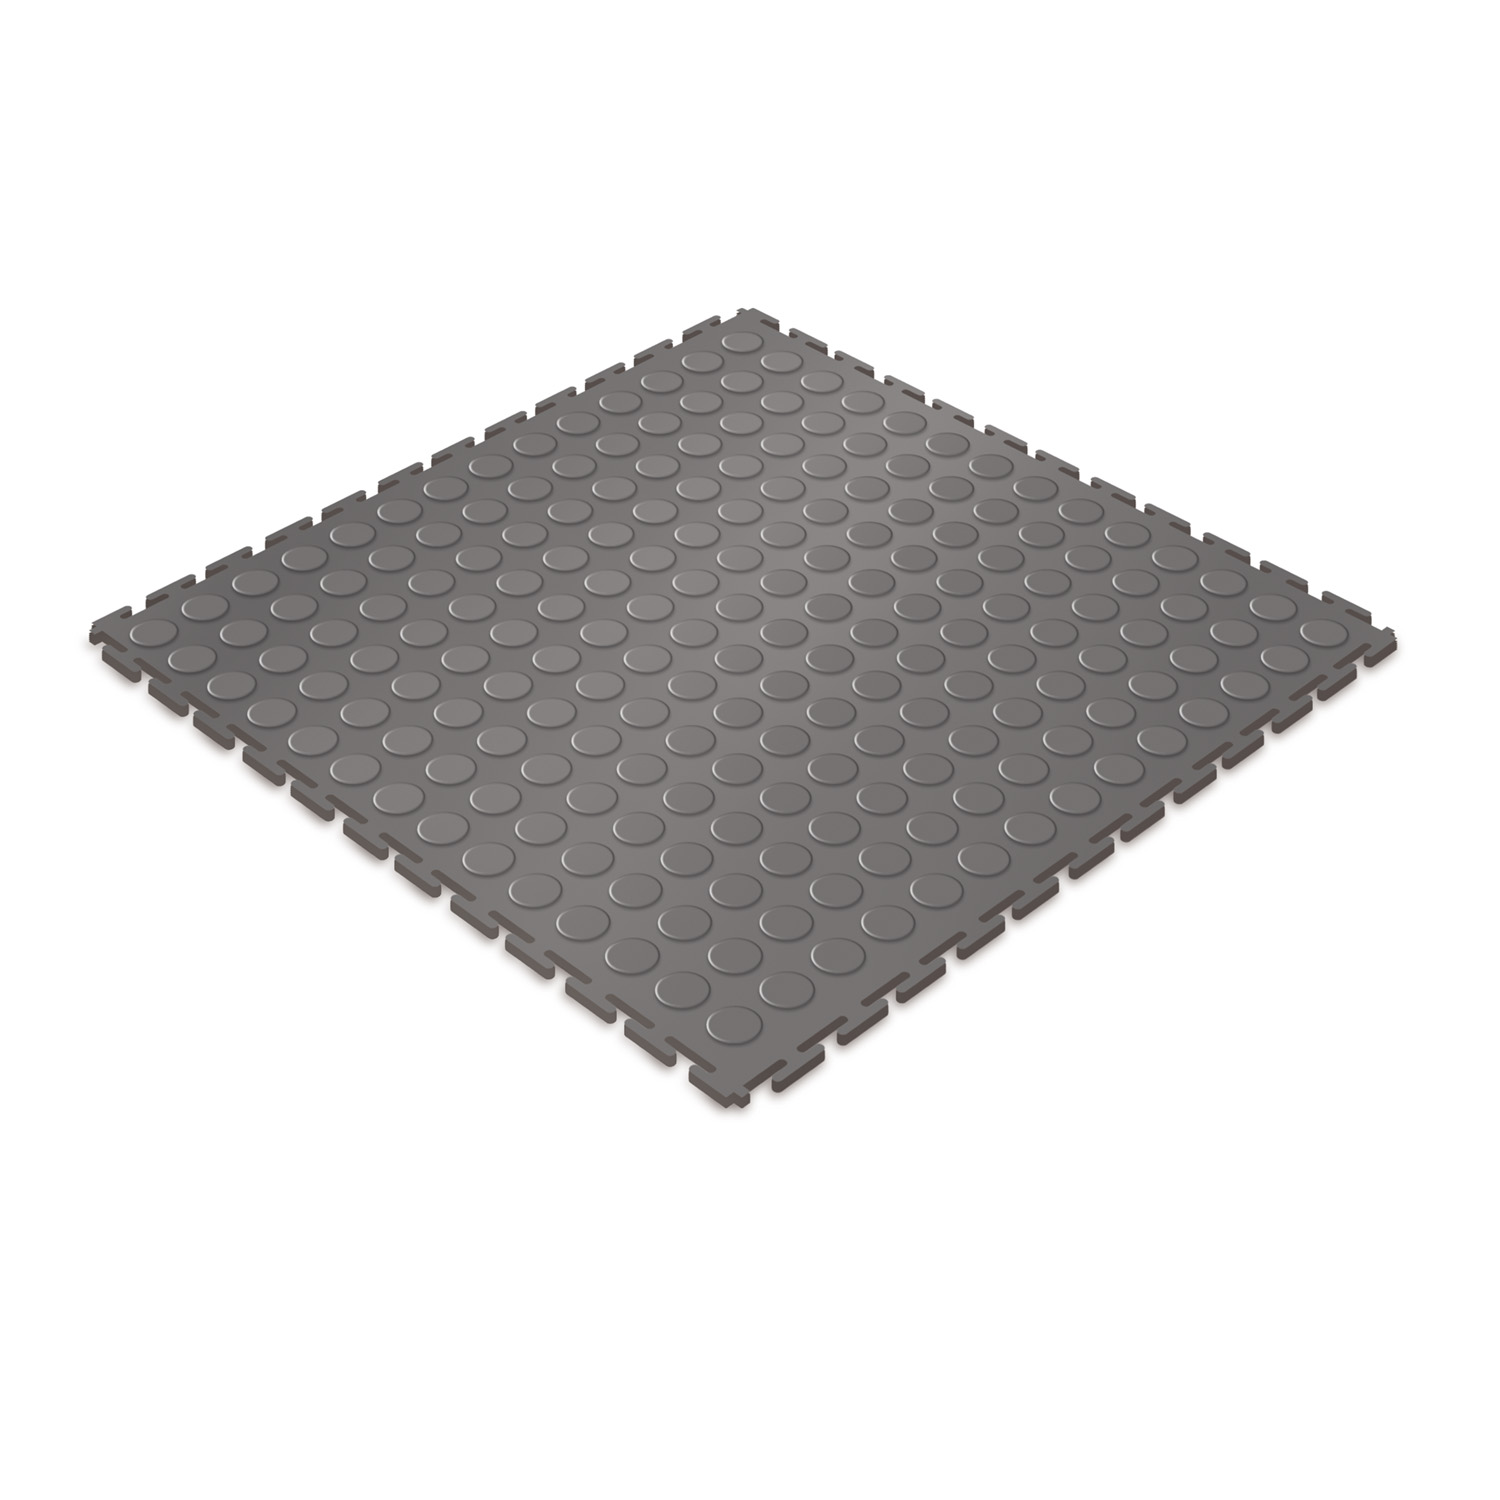 Heavy-duty floor tile (dark grey/studded)